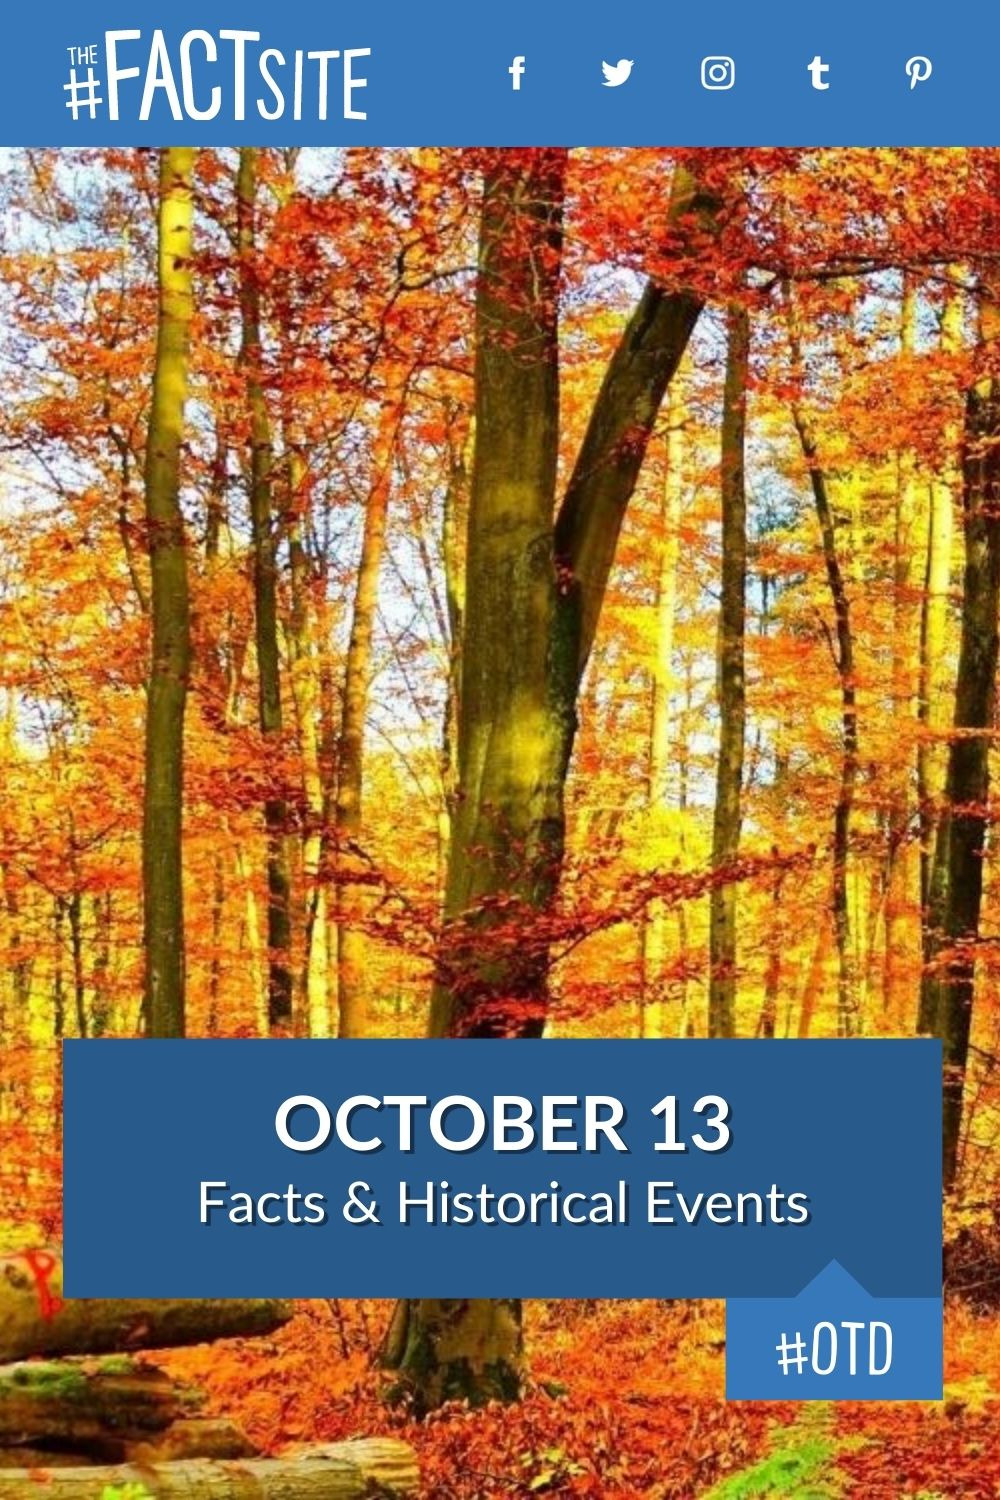 Facts & Historic Events That Happened on October 13